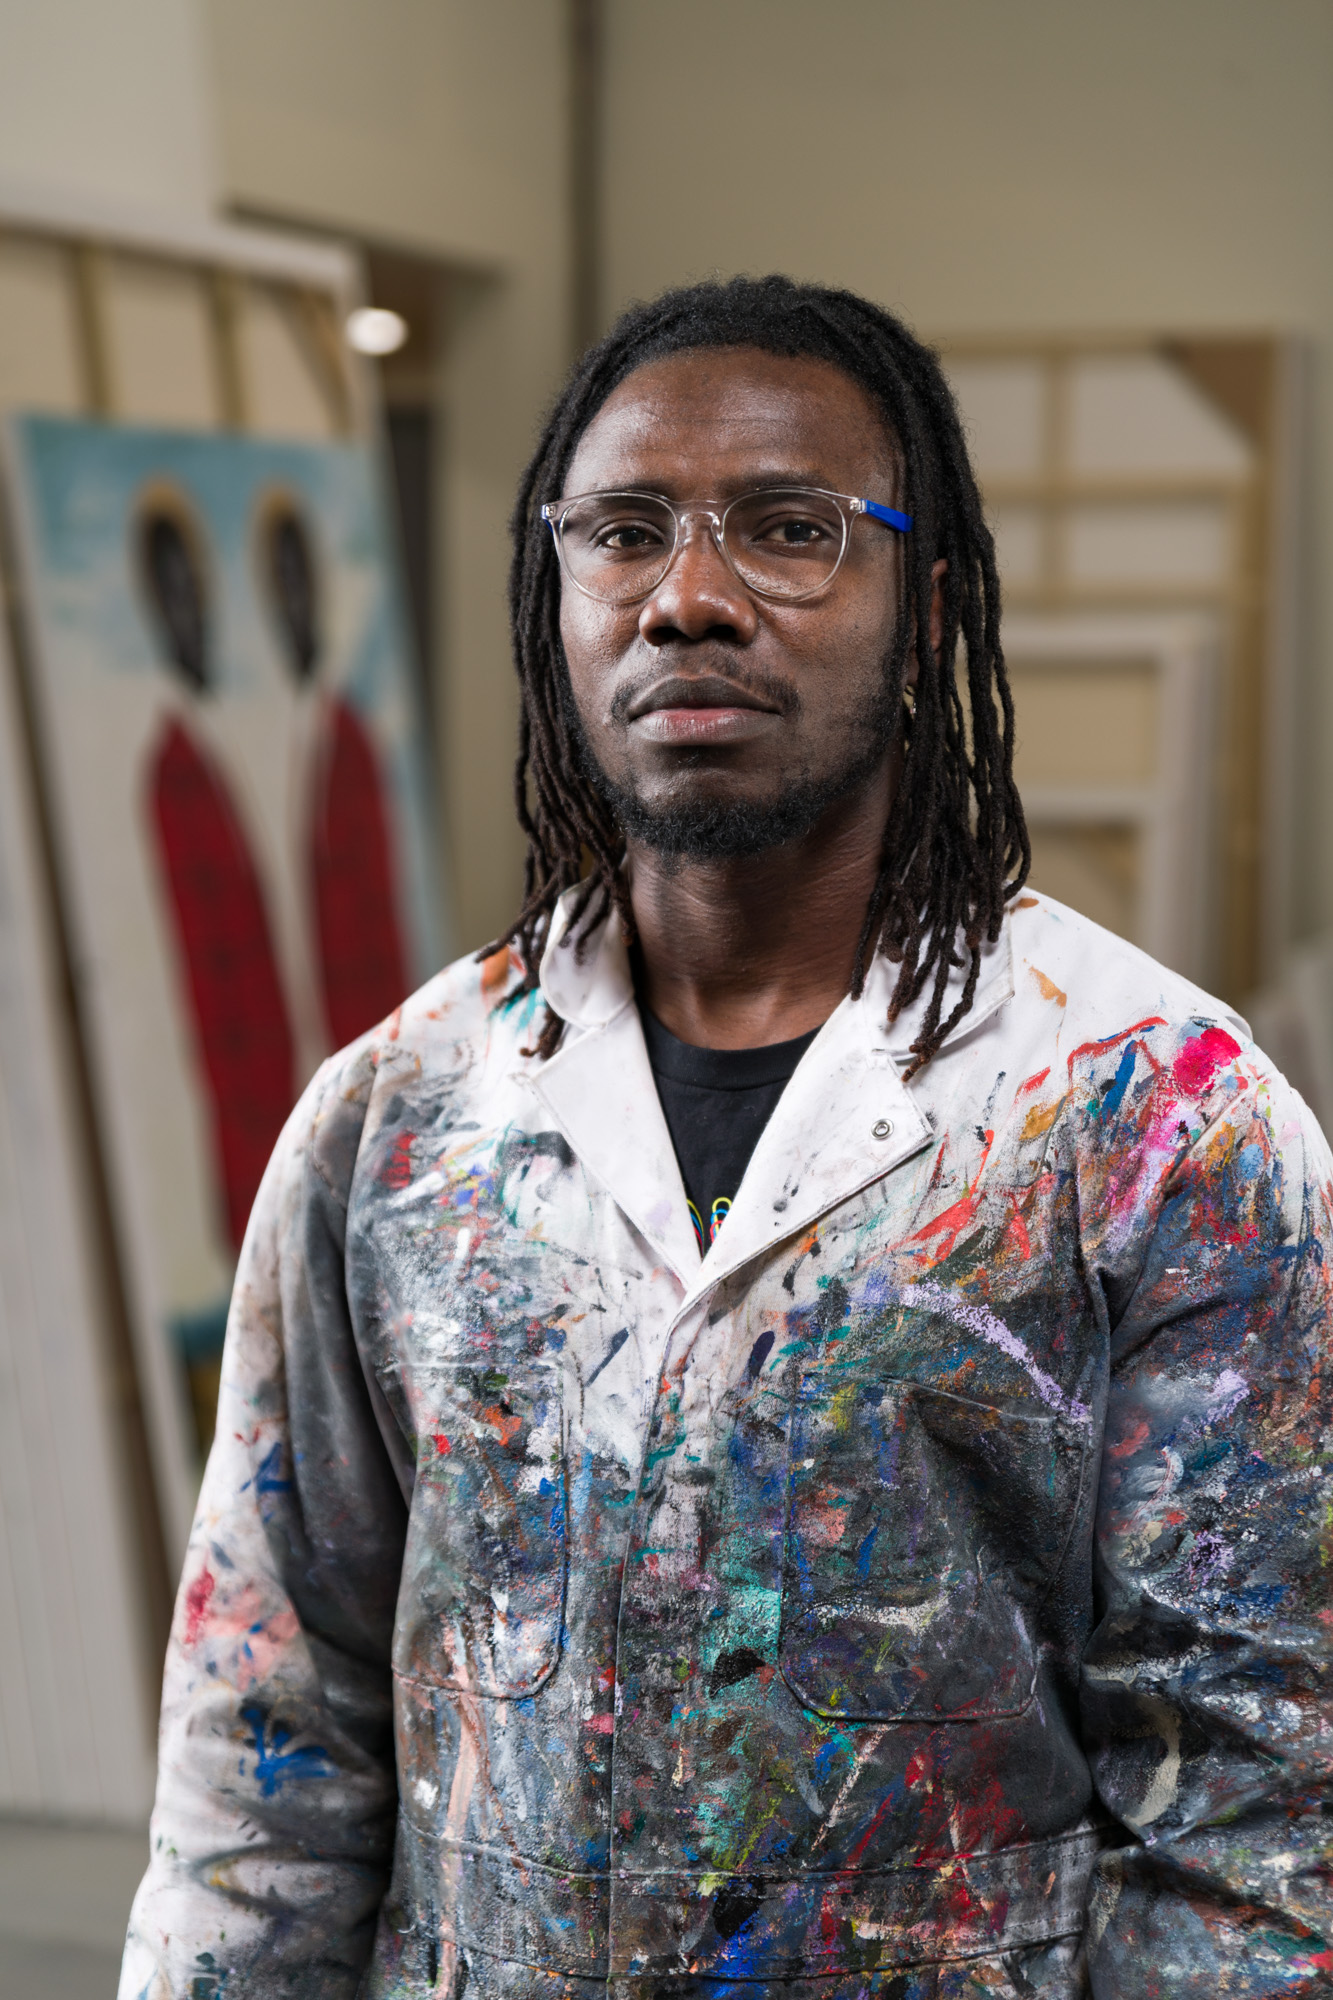 He Used to Work for FedEx. Now, Artist Otis Kwame Kye Quaicoe Is at the Forefront of the Next Generation of West African Art Stars   Artnet News